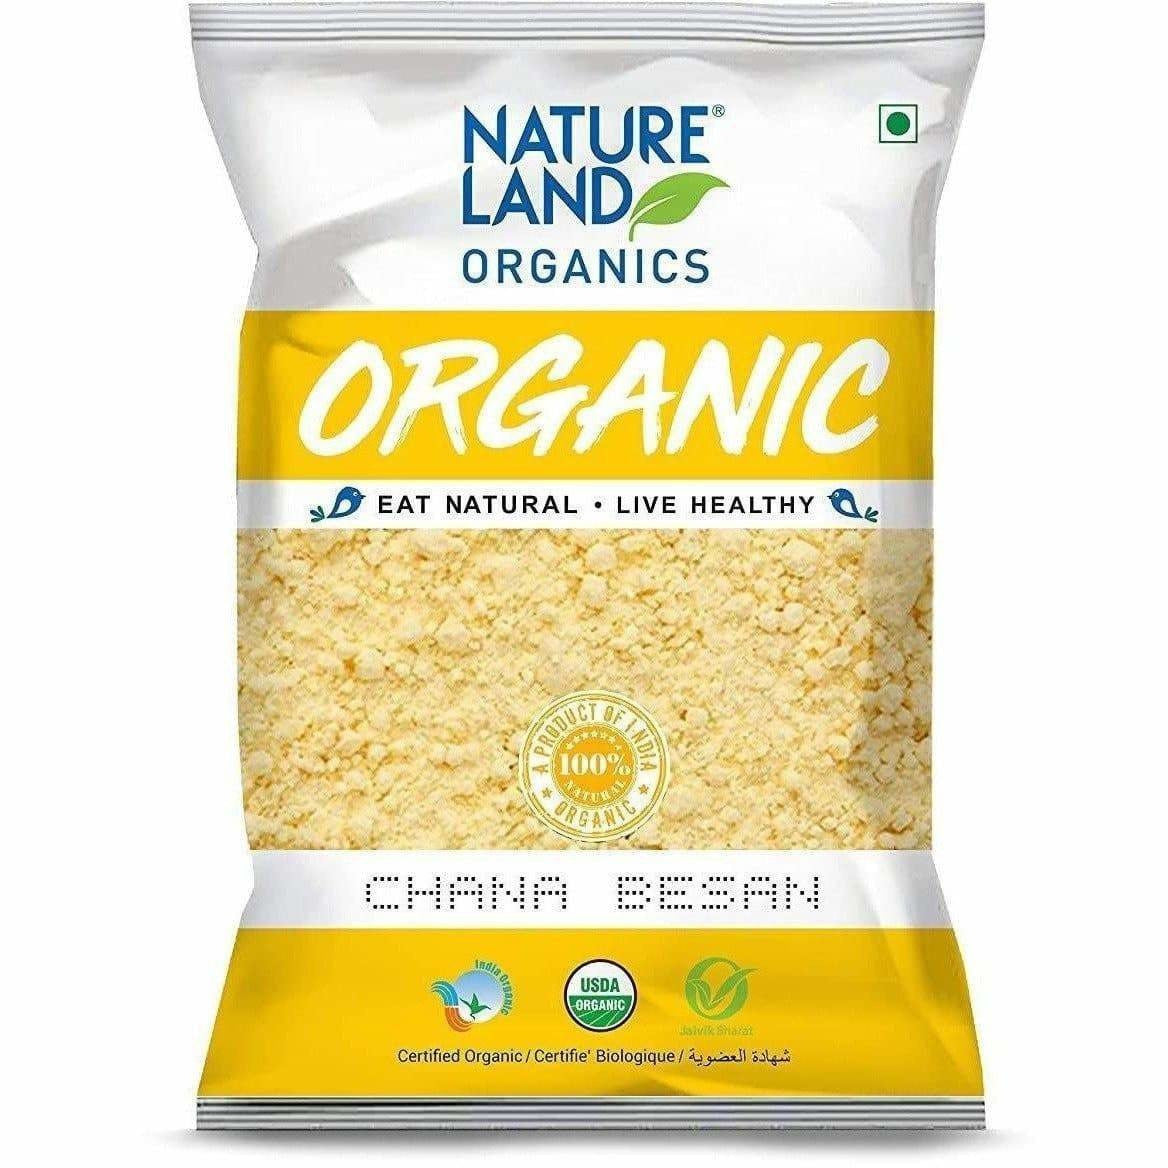 Nature land Organics Chana Besan